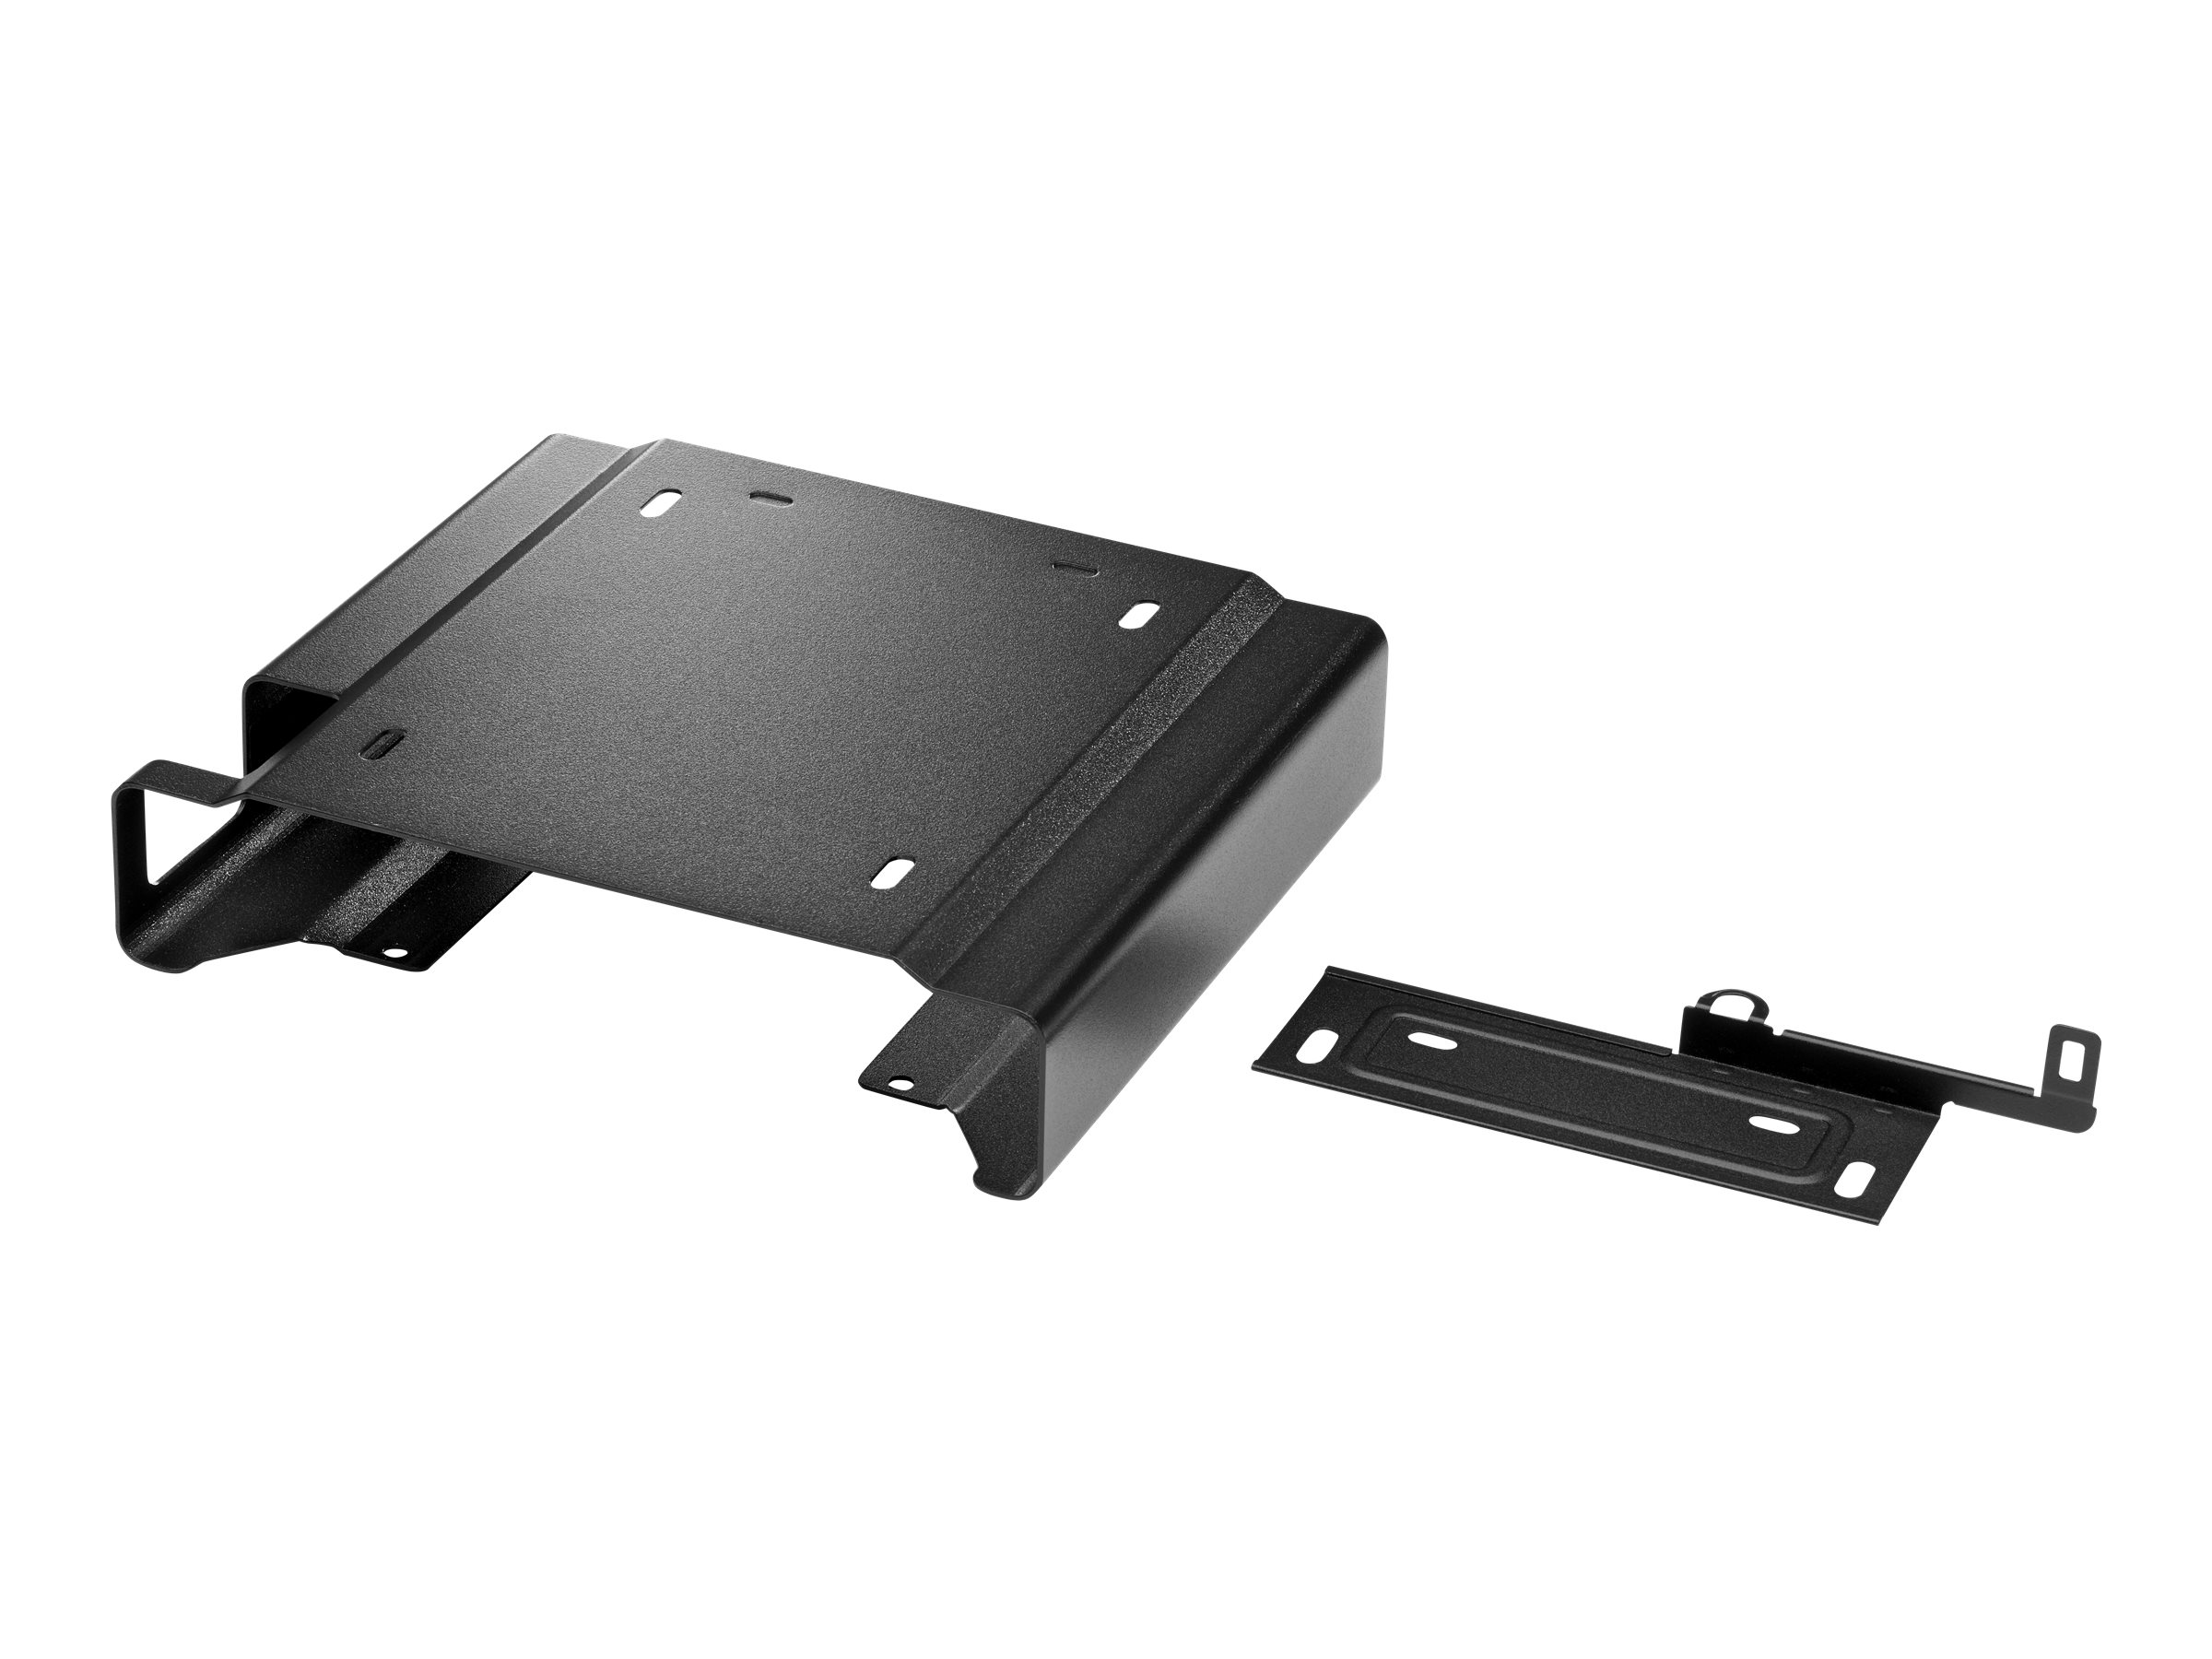 HP Desktop Mini Security / Dual VESA Sleeve v2 - Desktop-Hülle - für HP 6300 Pro, 6305 Pro; EliteDesk 705 G1, 705 G2, 705 G3, 800 G1, 800 G2, 800 G3